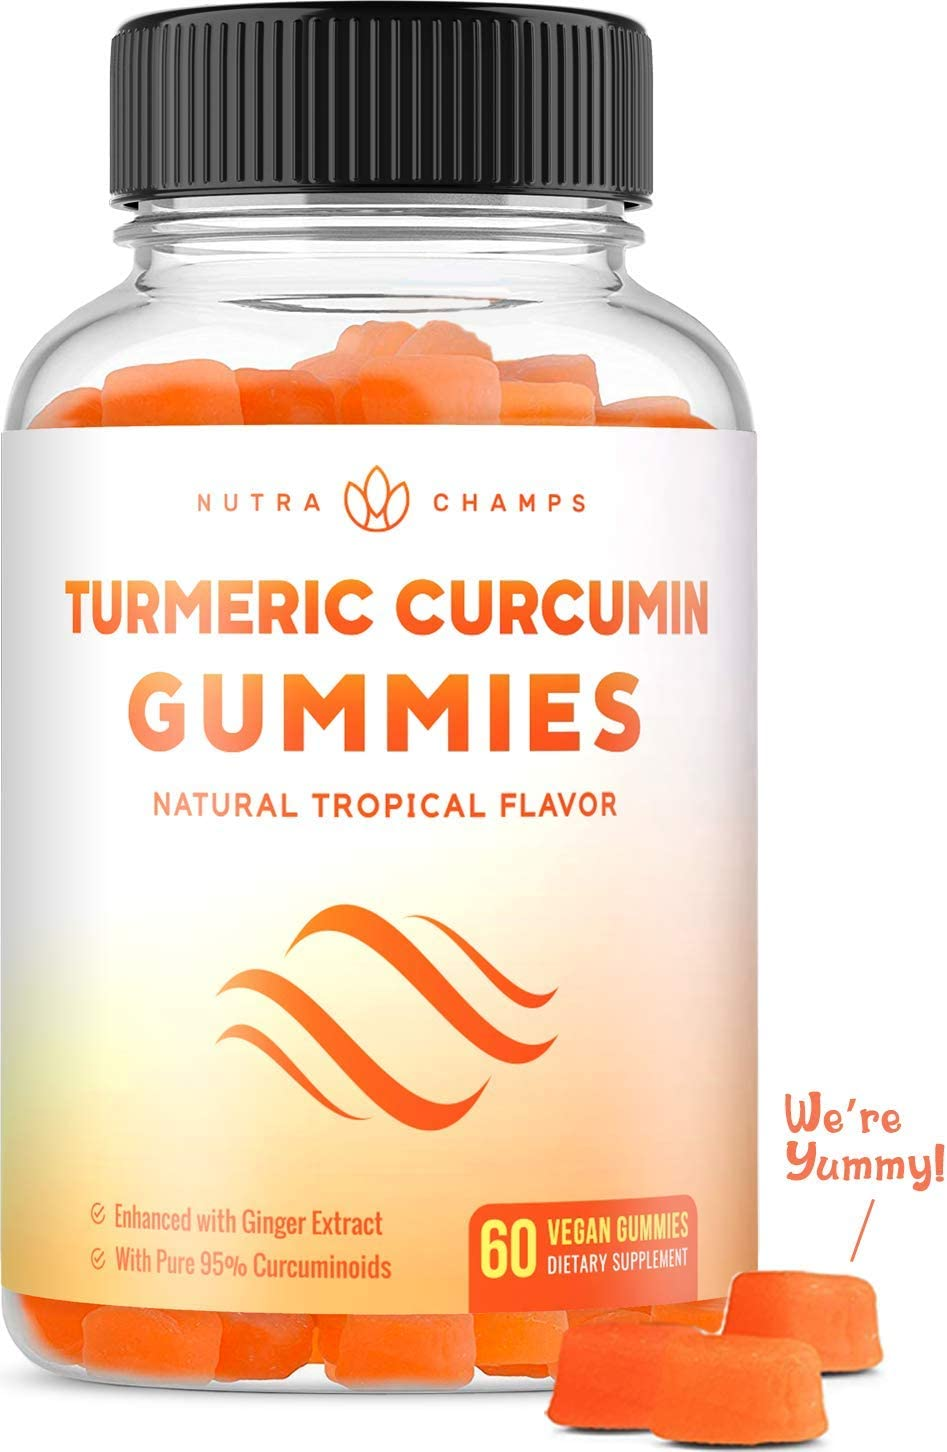 Turmeric Curcumin with Ginger Gummies - Delicious Natural, Vegan, Pectin-Based Gummy Vitamin Supplement for Adults & Kids [95% Standardized Curcuminoids] Inflammation, Joint Support & Overall Health